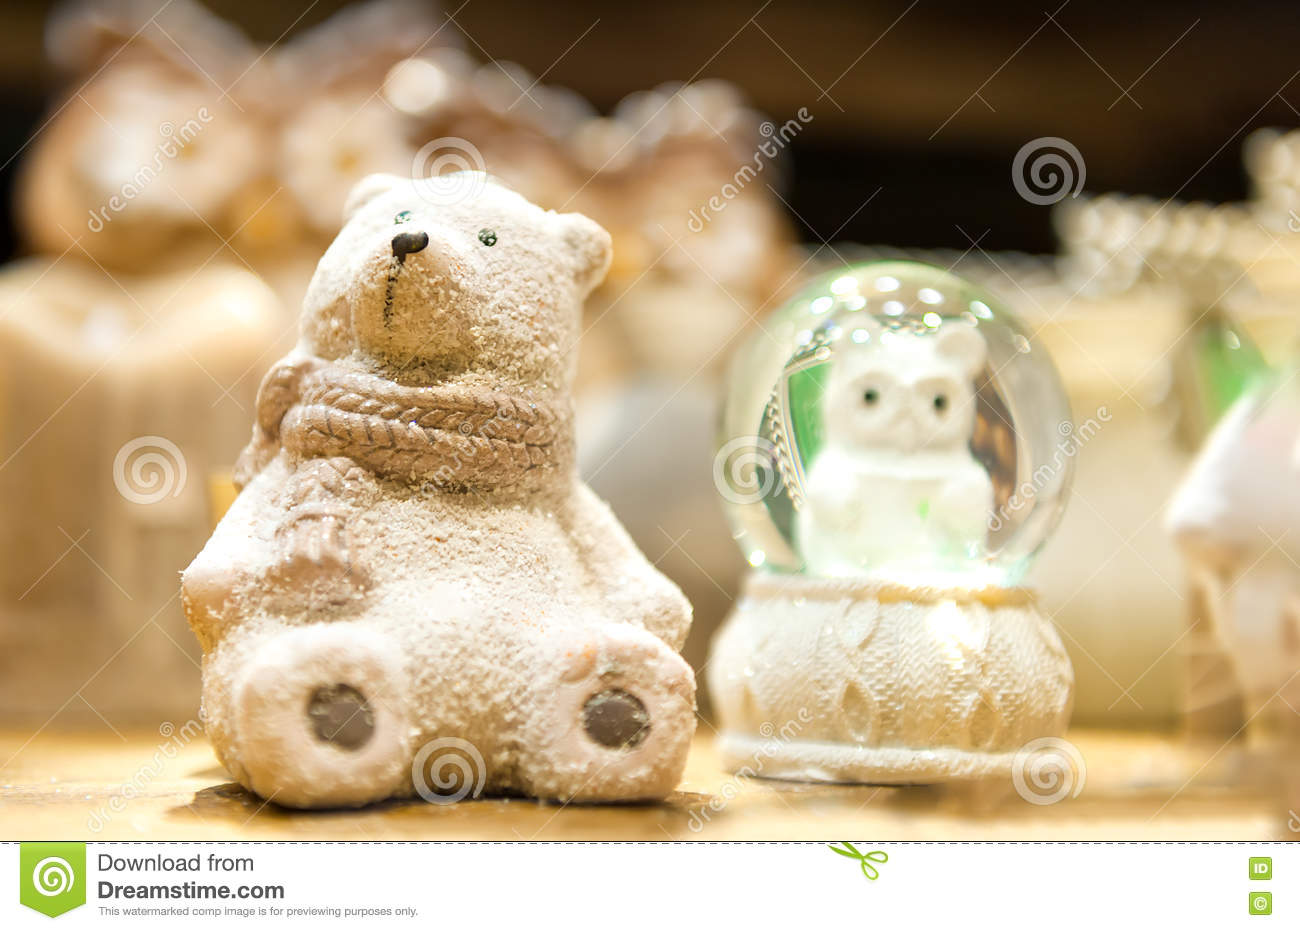 Cute White Christmas Teddy Bear Made Of Porcelain Is On